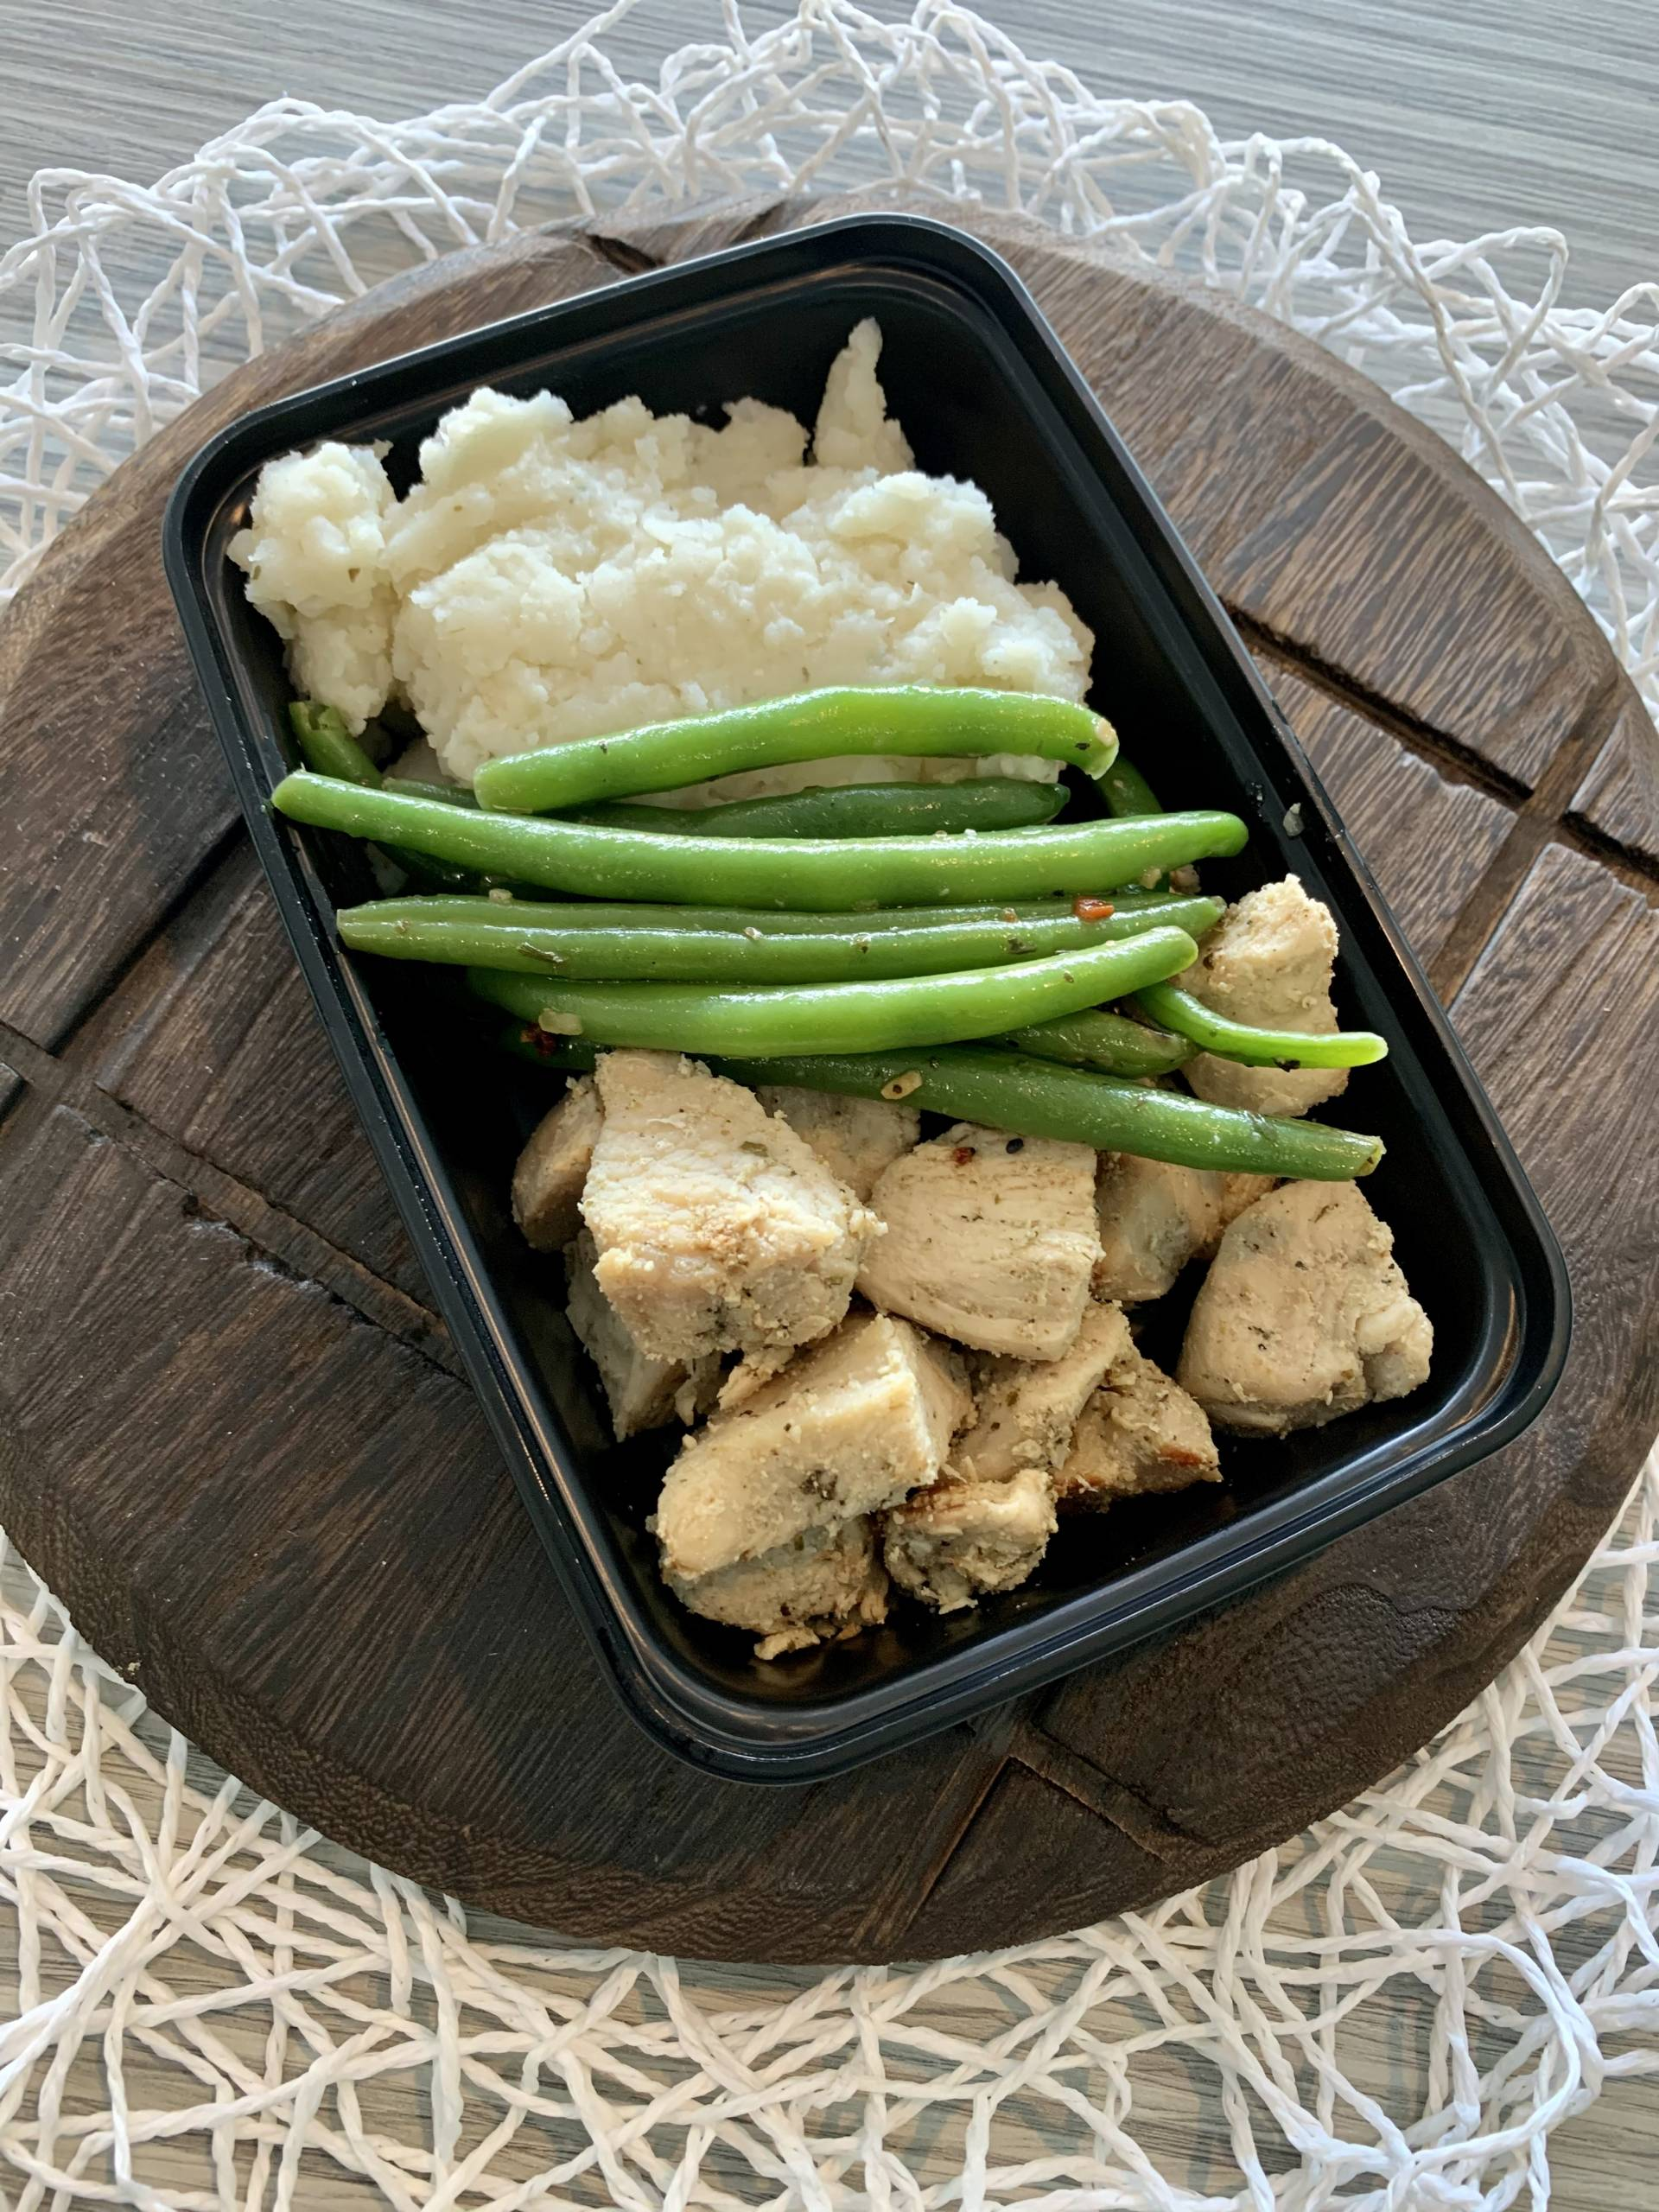 Grilled Chicken, Mashed Potato and Green Beans